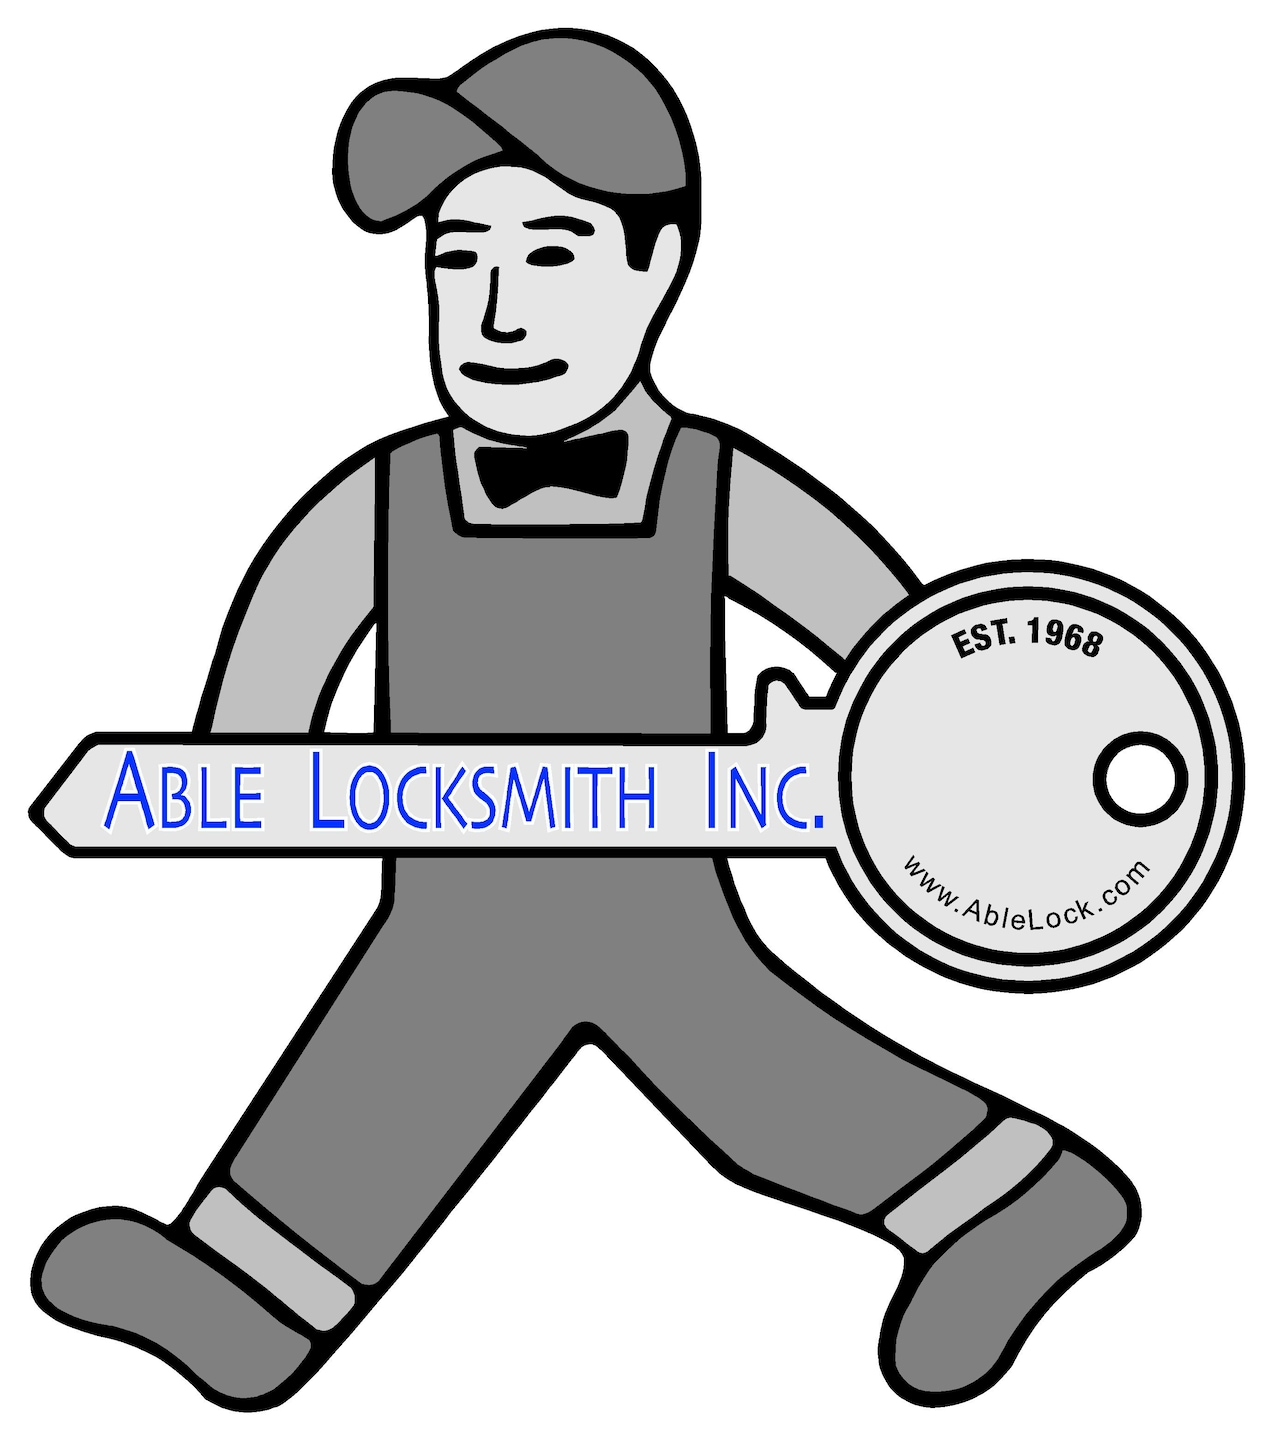 ABLE LOCKSMITH INC